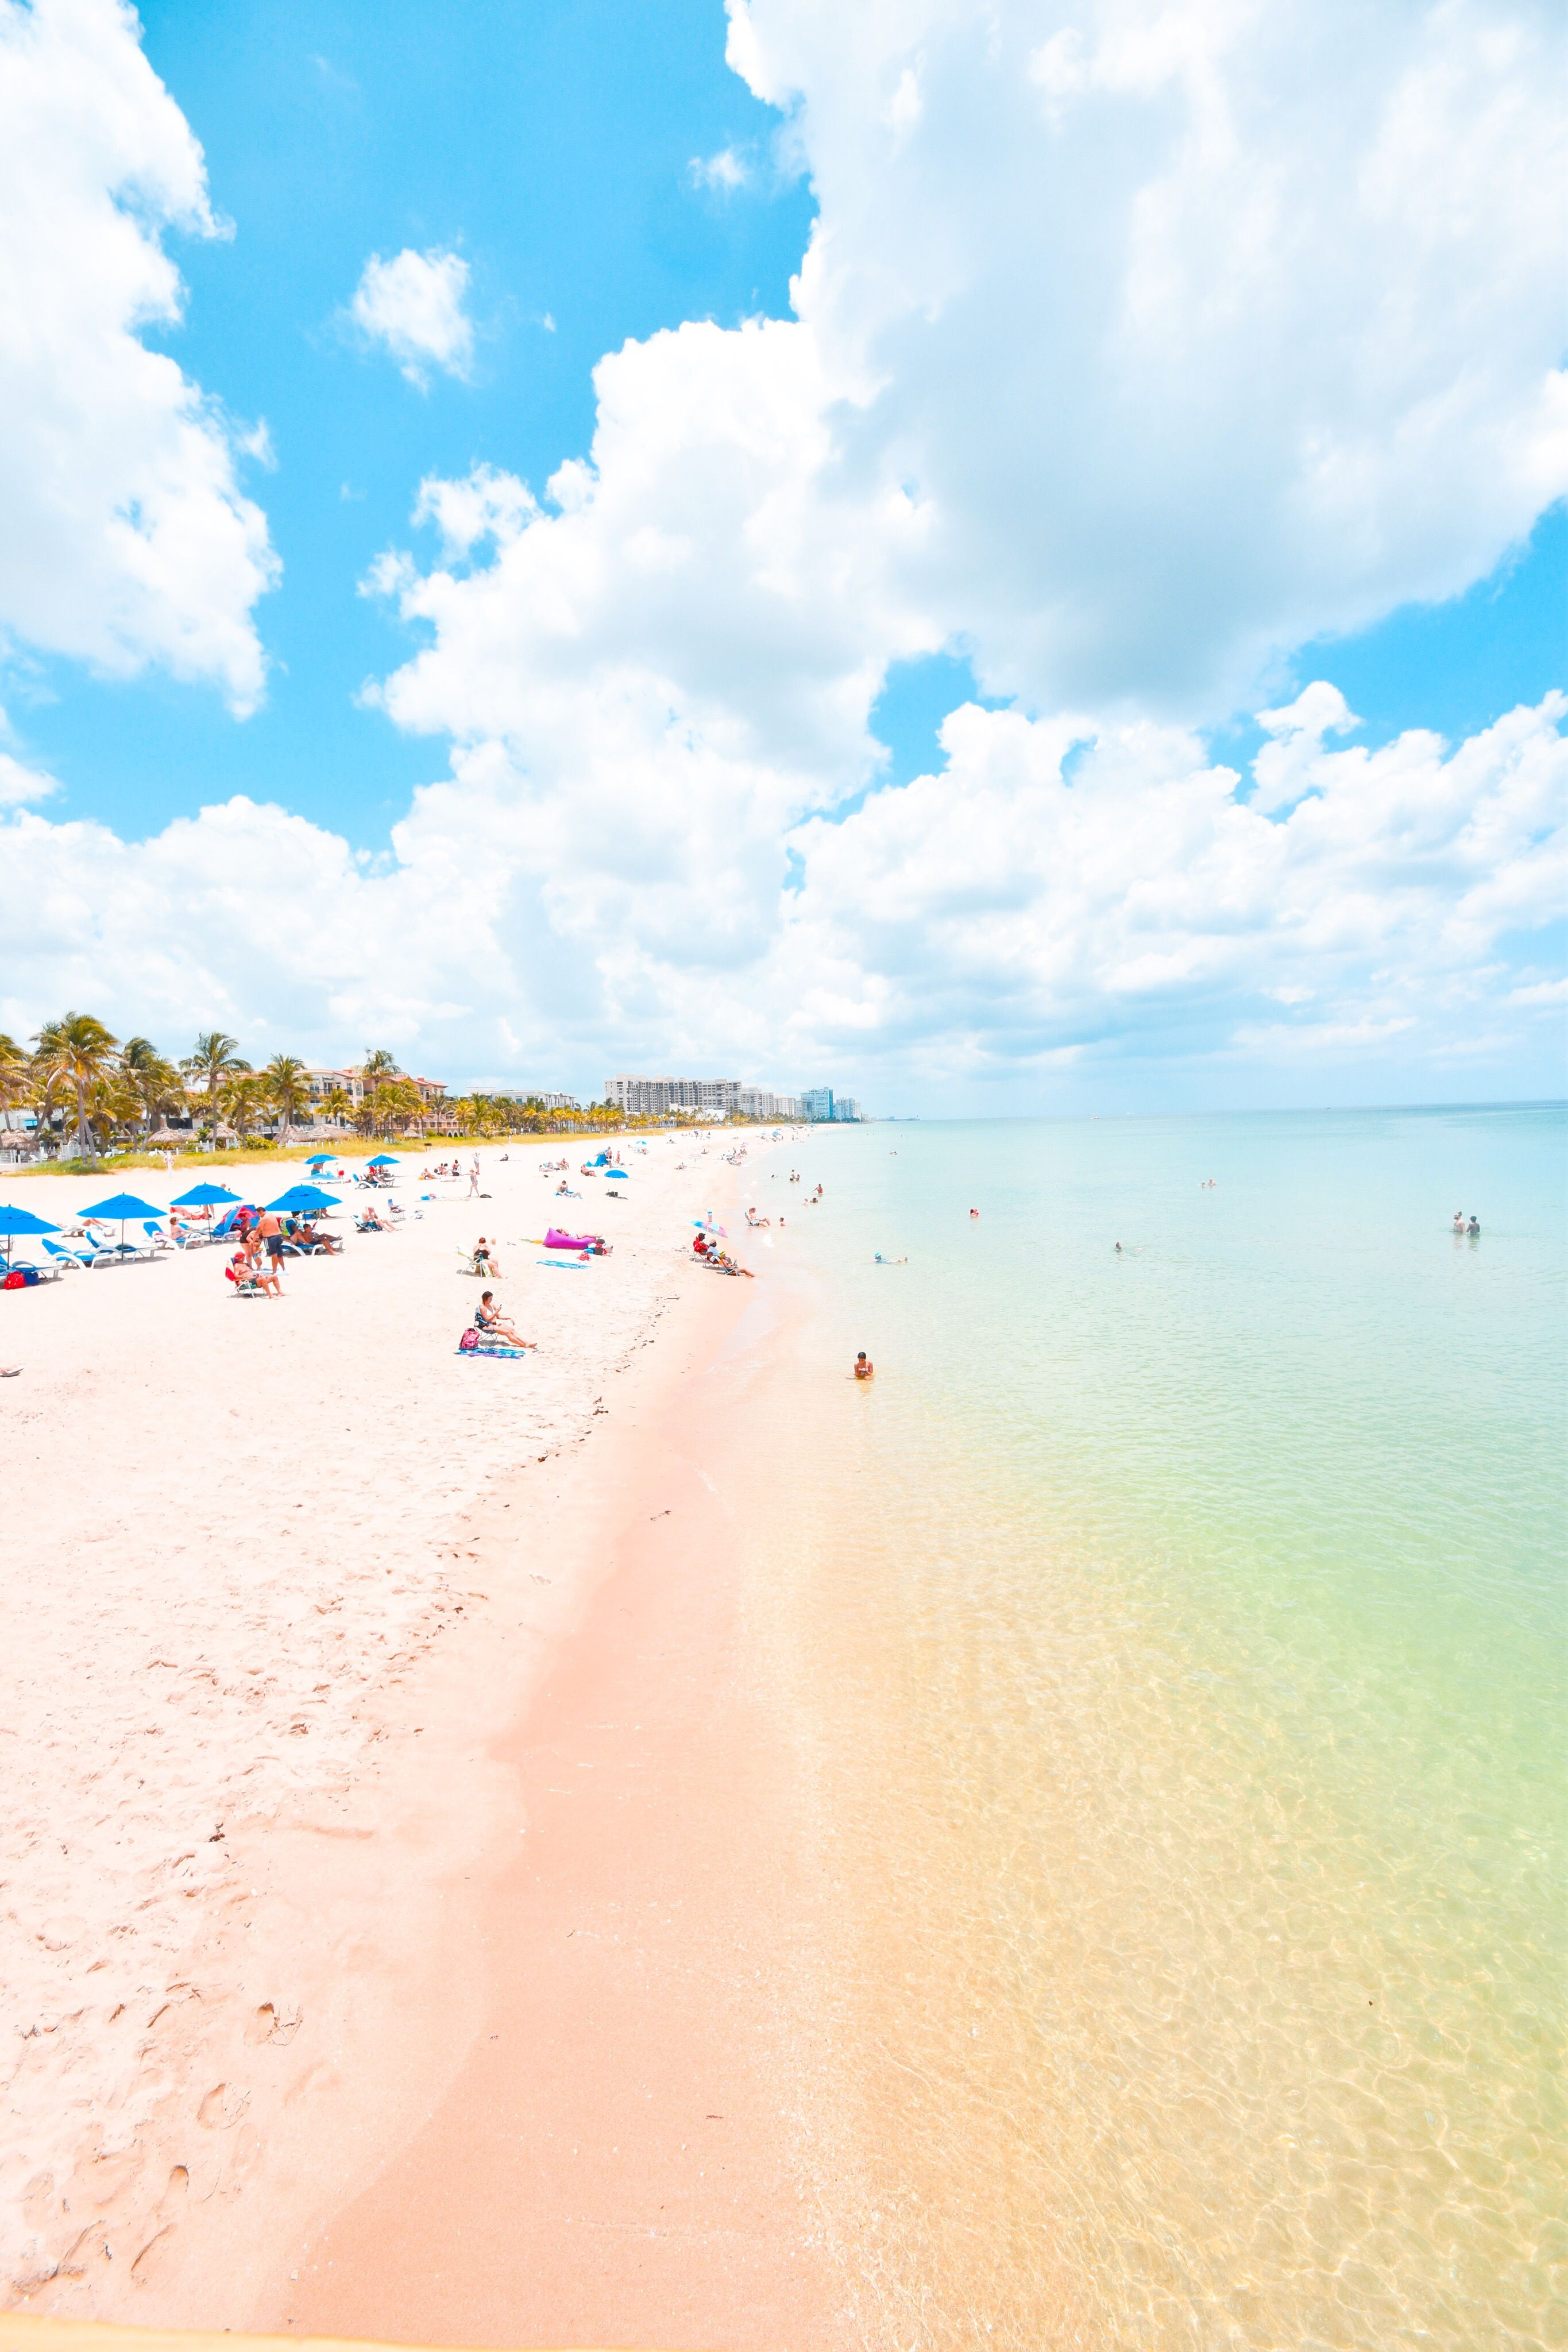 Rainbow-colored Beaches In Fort Lauderdale, Florida